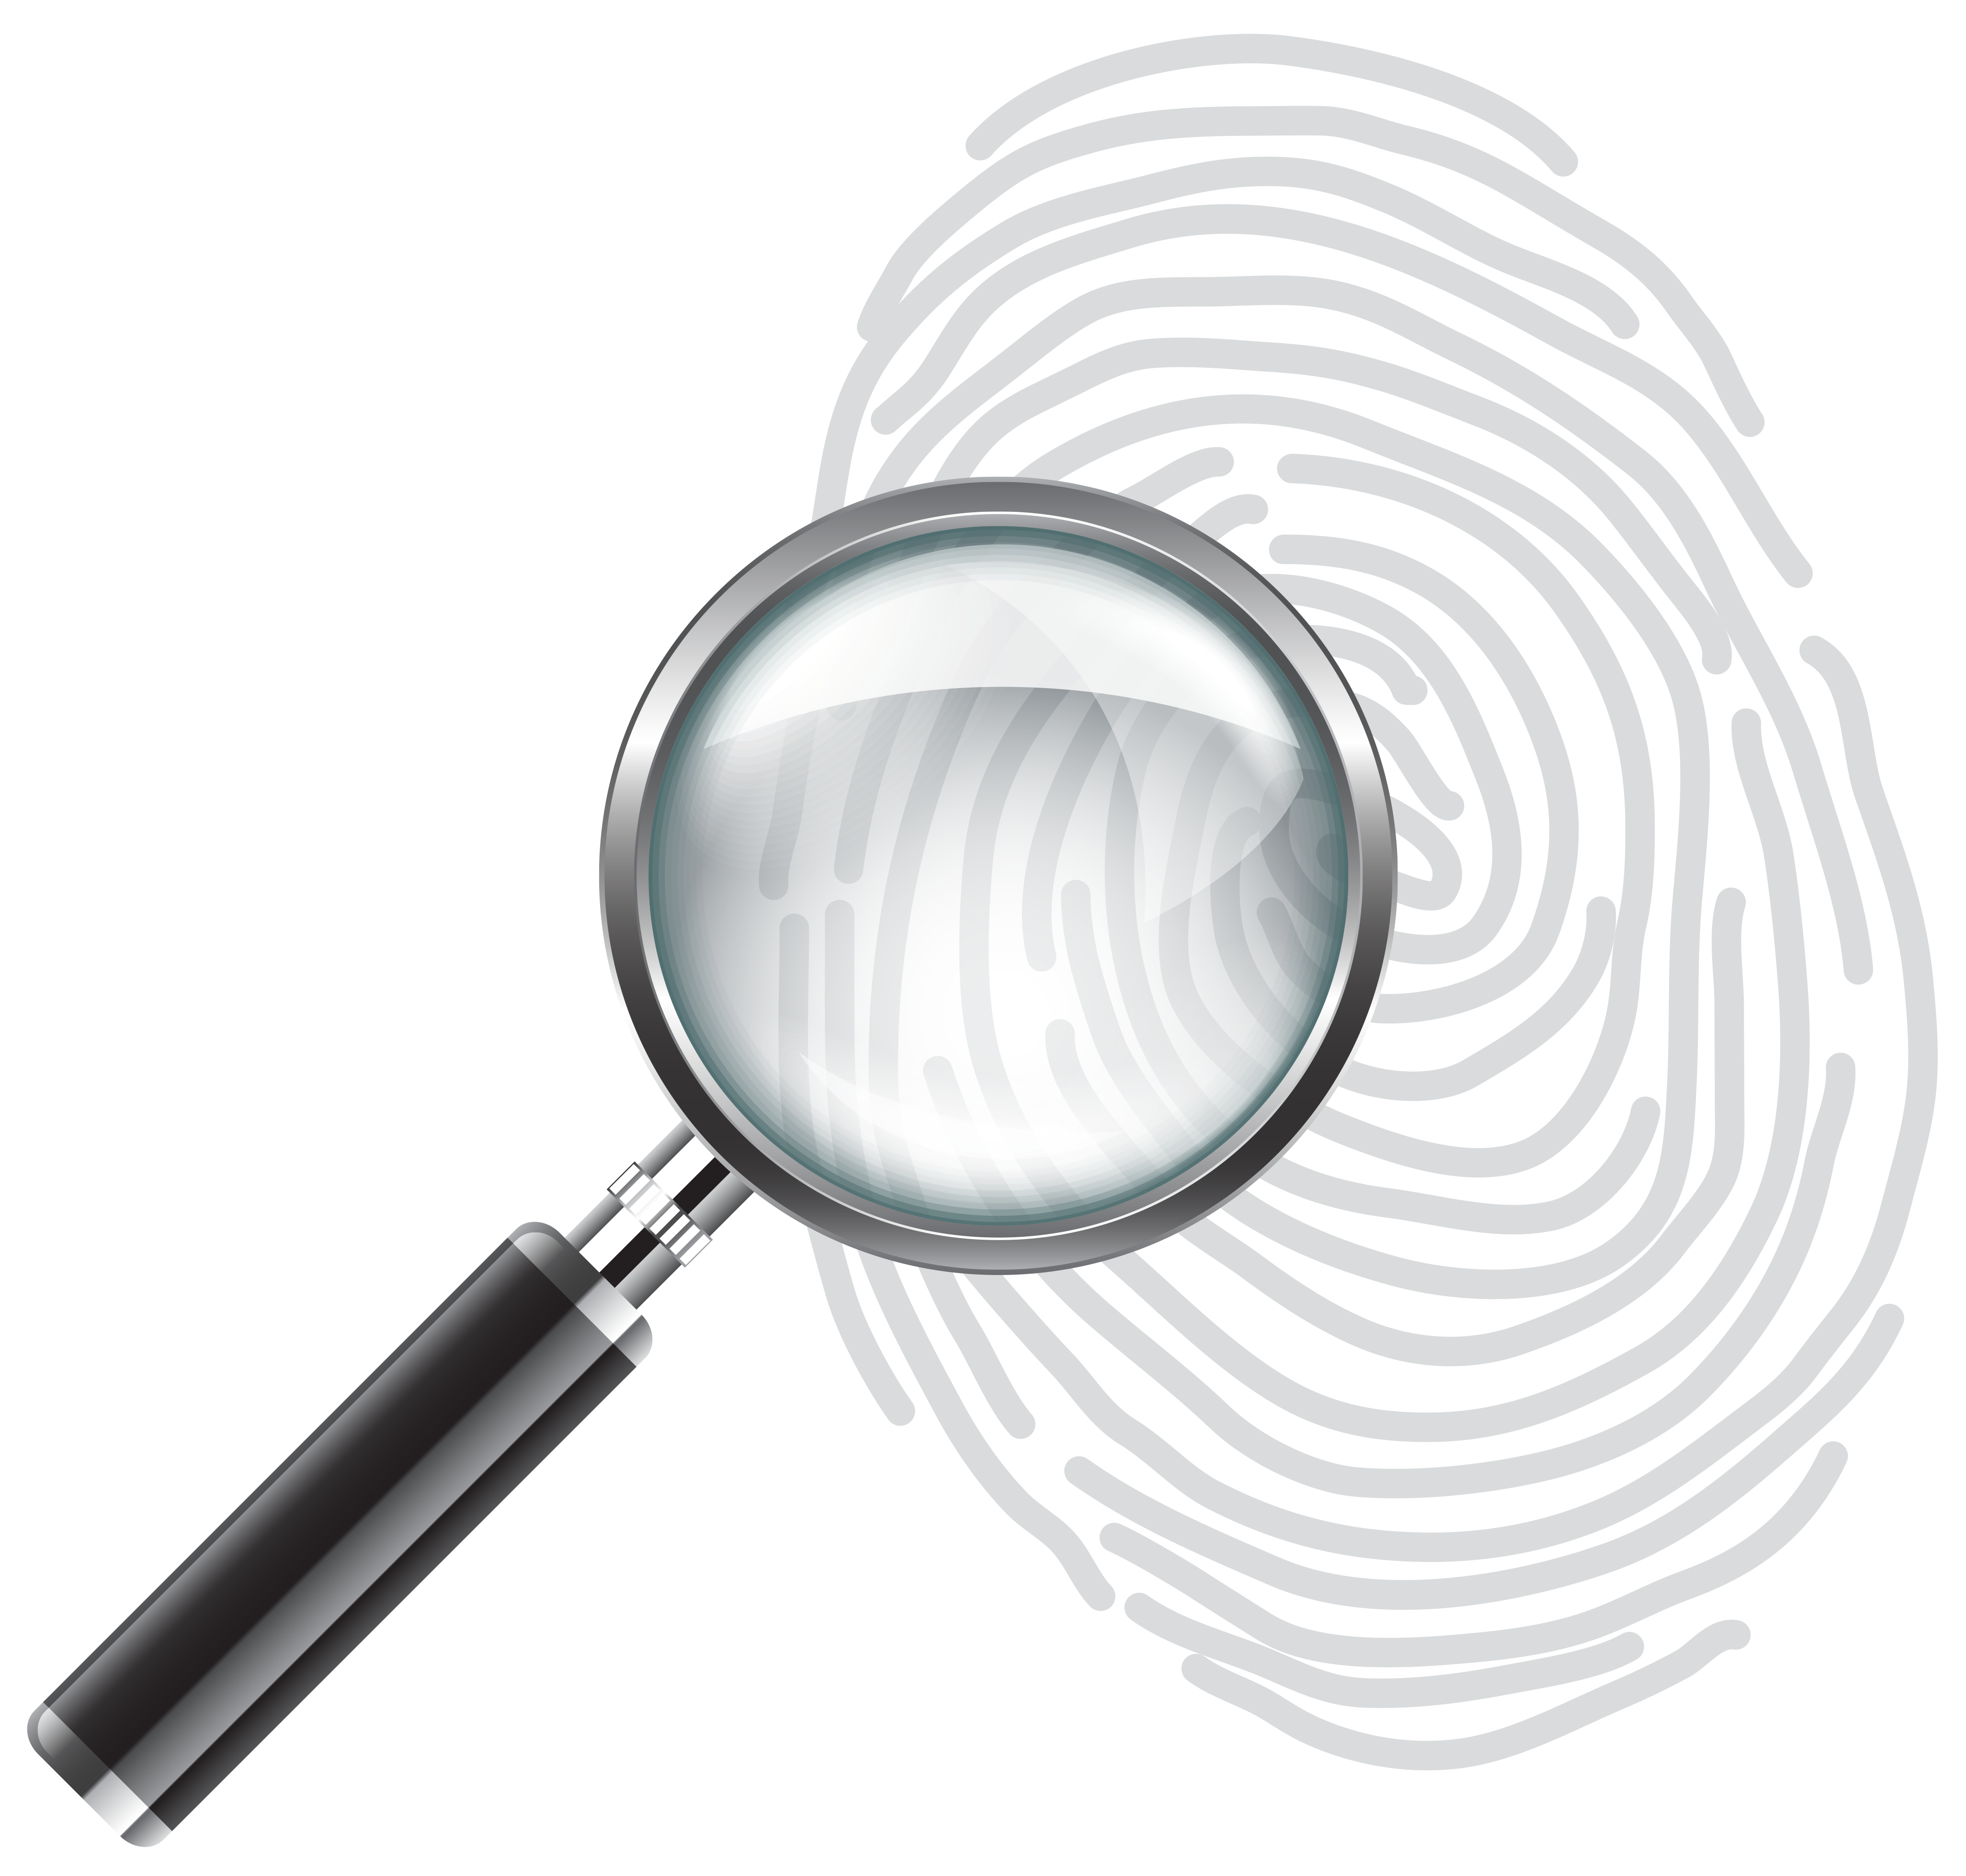 vector black and white Fingerprint clipart clear background. Magnifying glass with png.